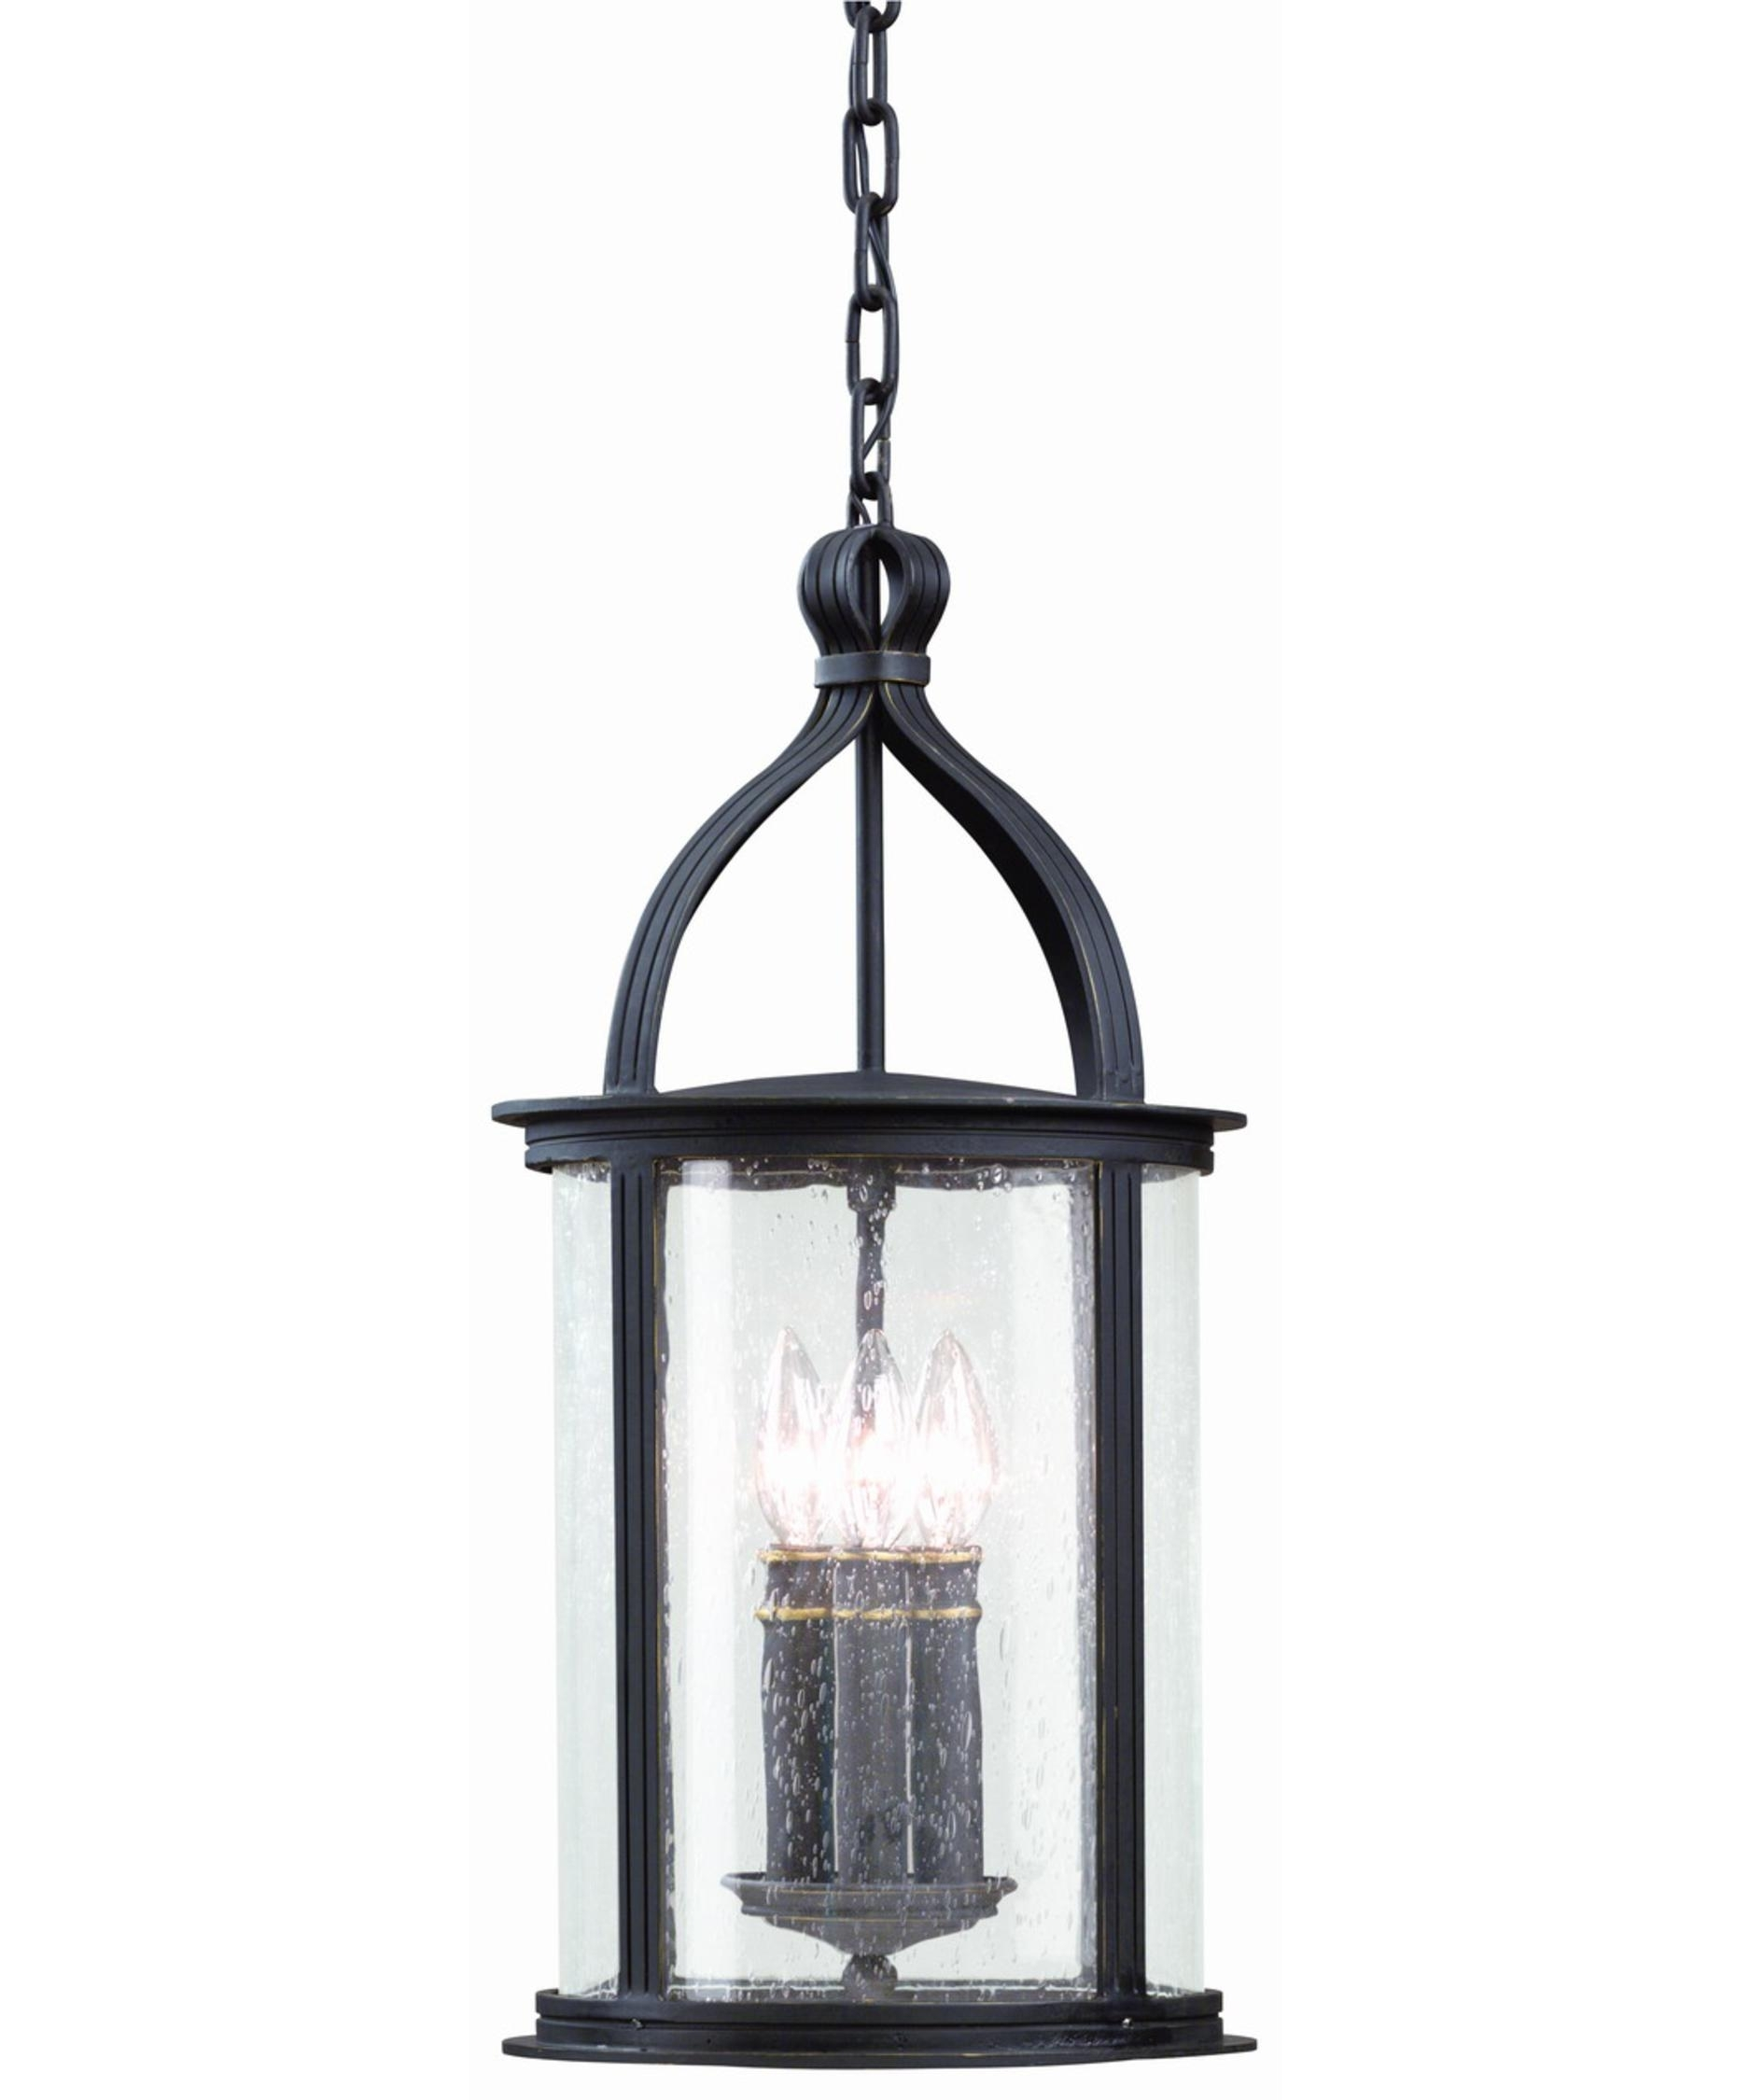 Troy Lighting F9476 Scarsdale 10 Inch Wide 3 Light Outdoor Hanging Intended For Outdoor Hanging Light In Black (#14 of 15)